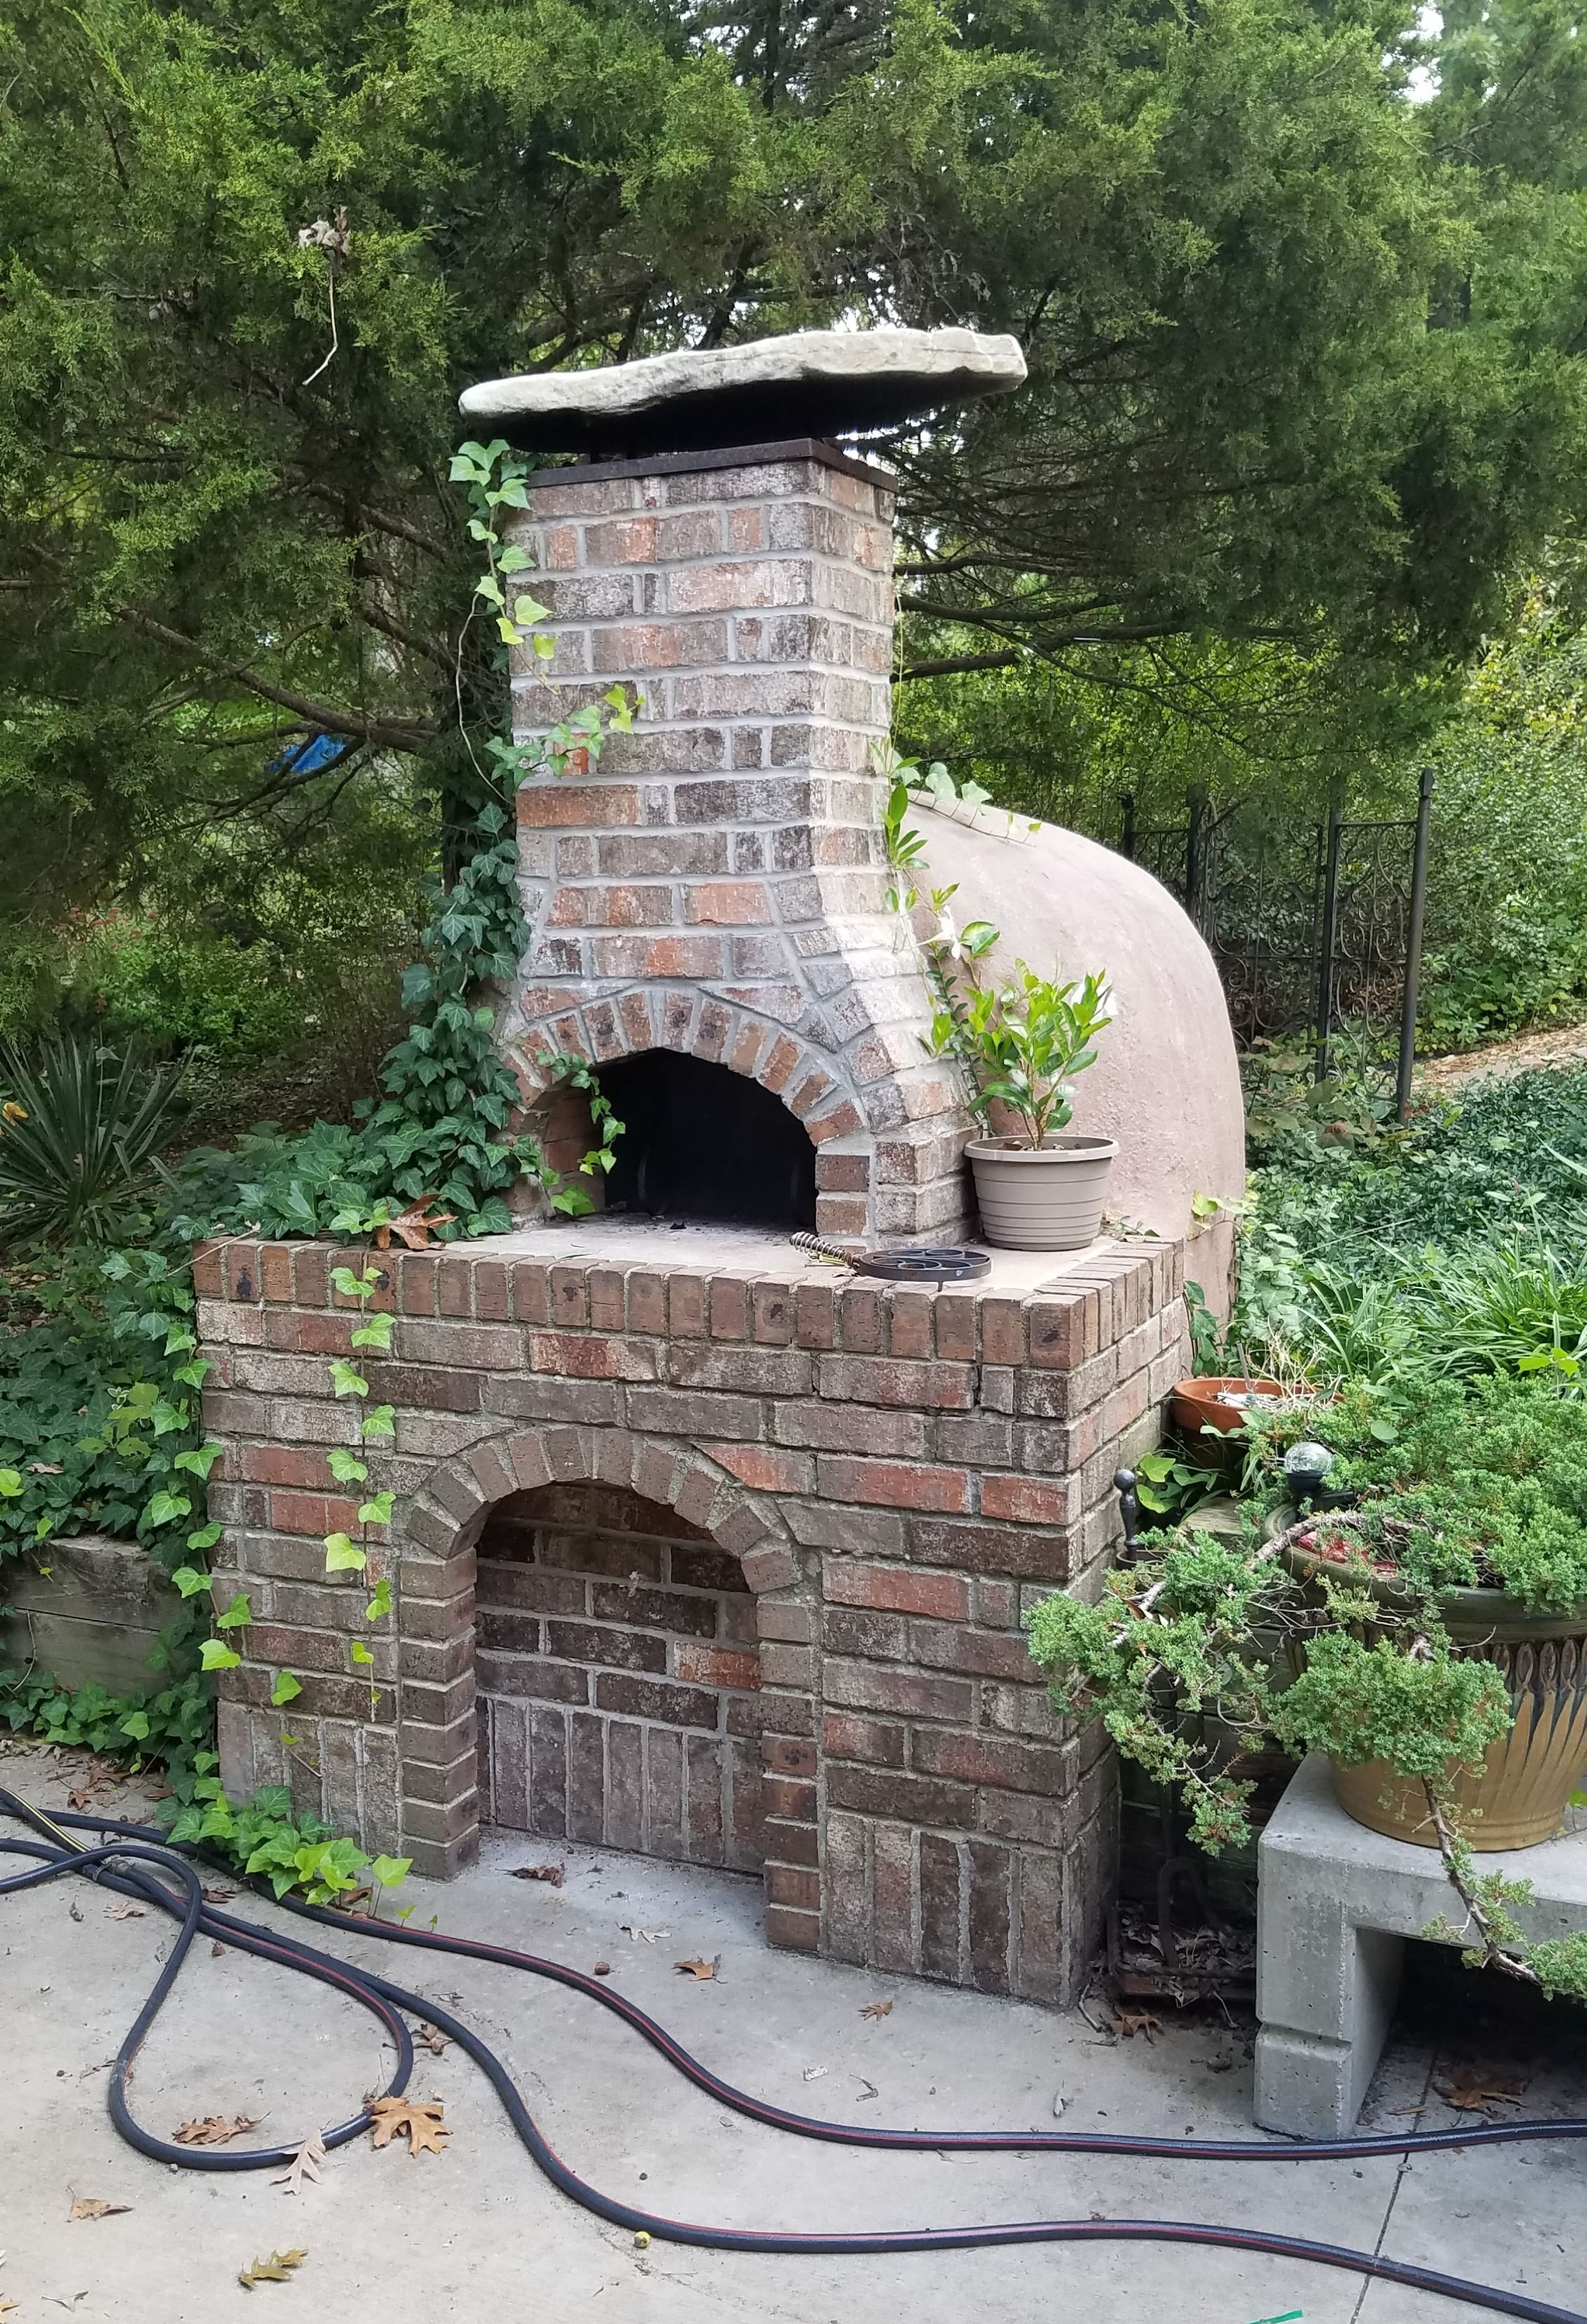 Pompeii Diy Brick Oven Photos In United States Pizza Oven Brick